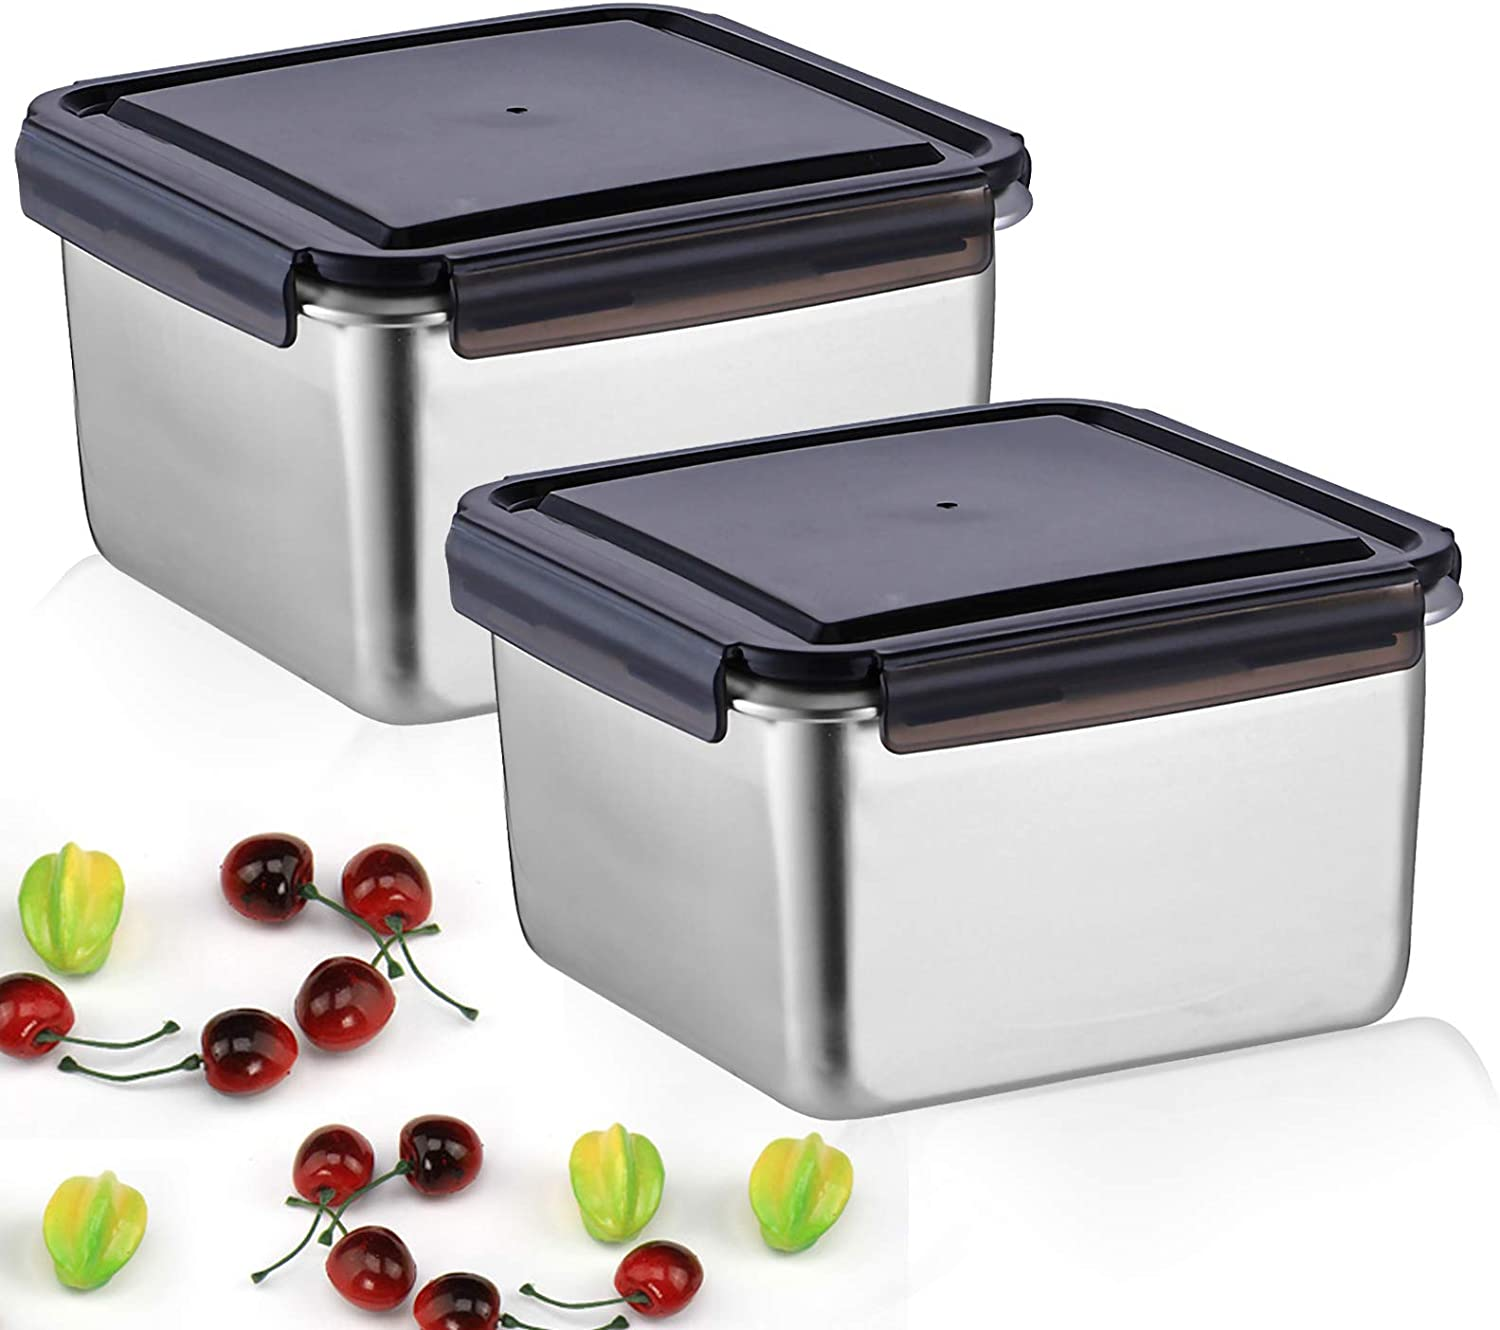 MANO Stainless Steel Large Food Storage Container,Set of 2,Airtight Reusable Containers Bento lunch box with Leak-proof Lids for Fruit, Salad, Snacks, Kimchi,Outdoor Picnic,Camping